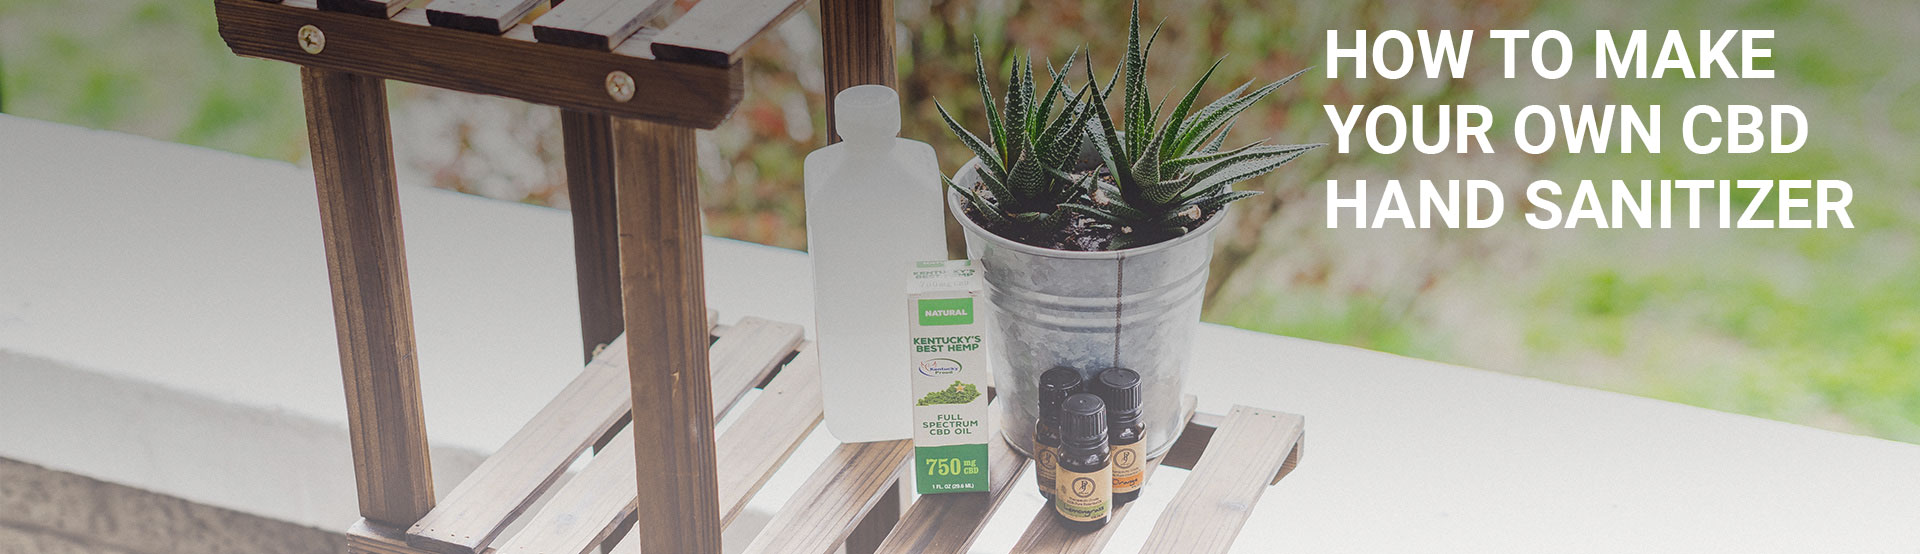 How to make your own CBD hand sanitizer Hero Image